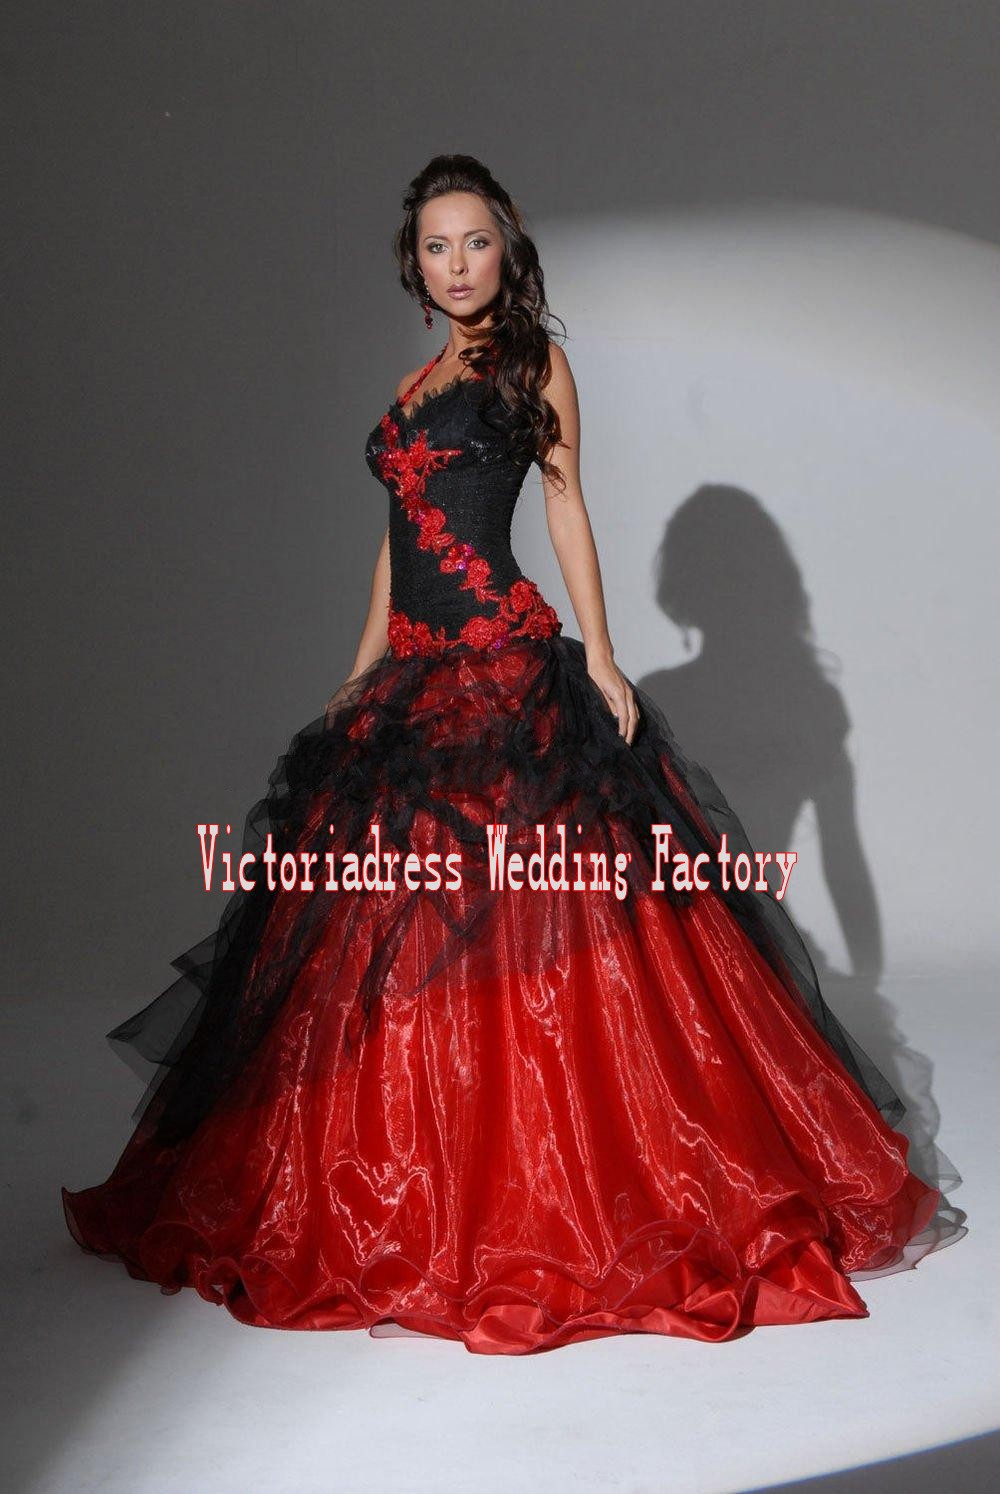 plus size gothic wedding dresses | Dress images